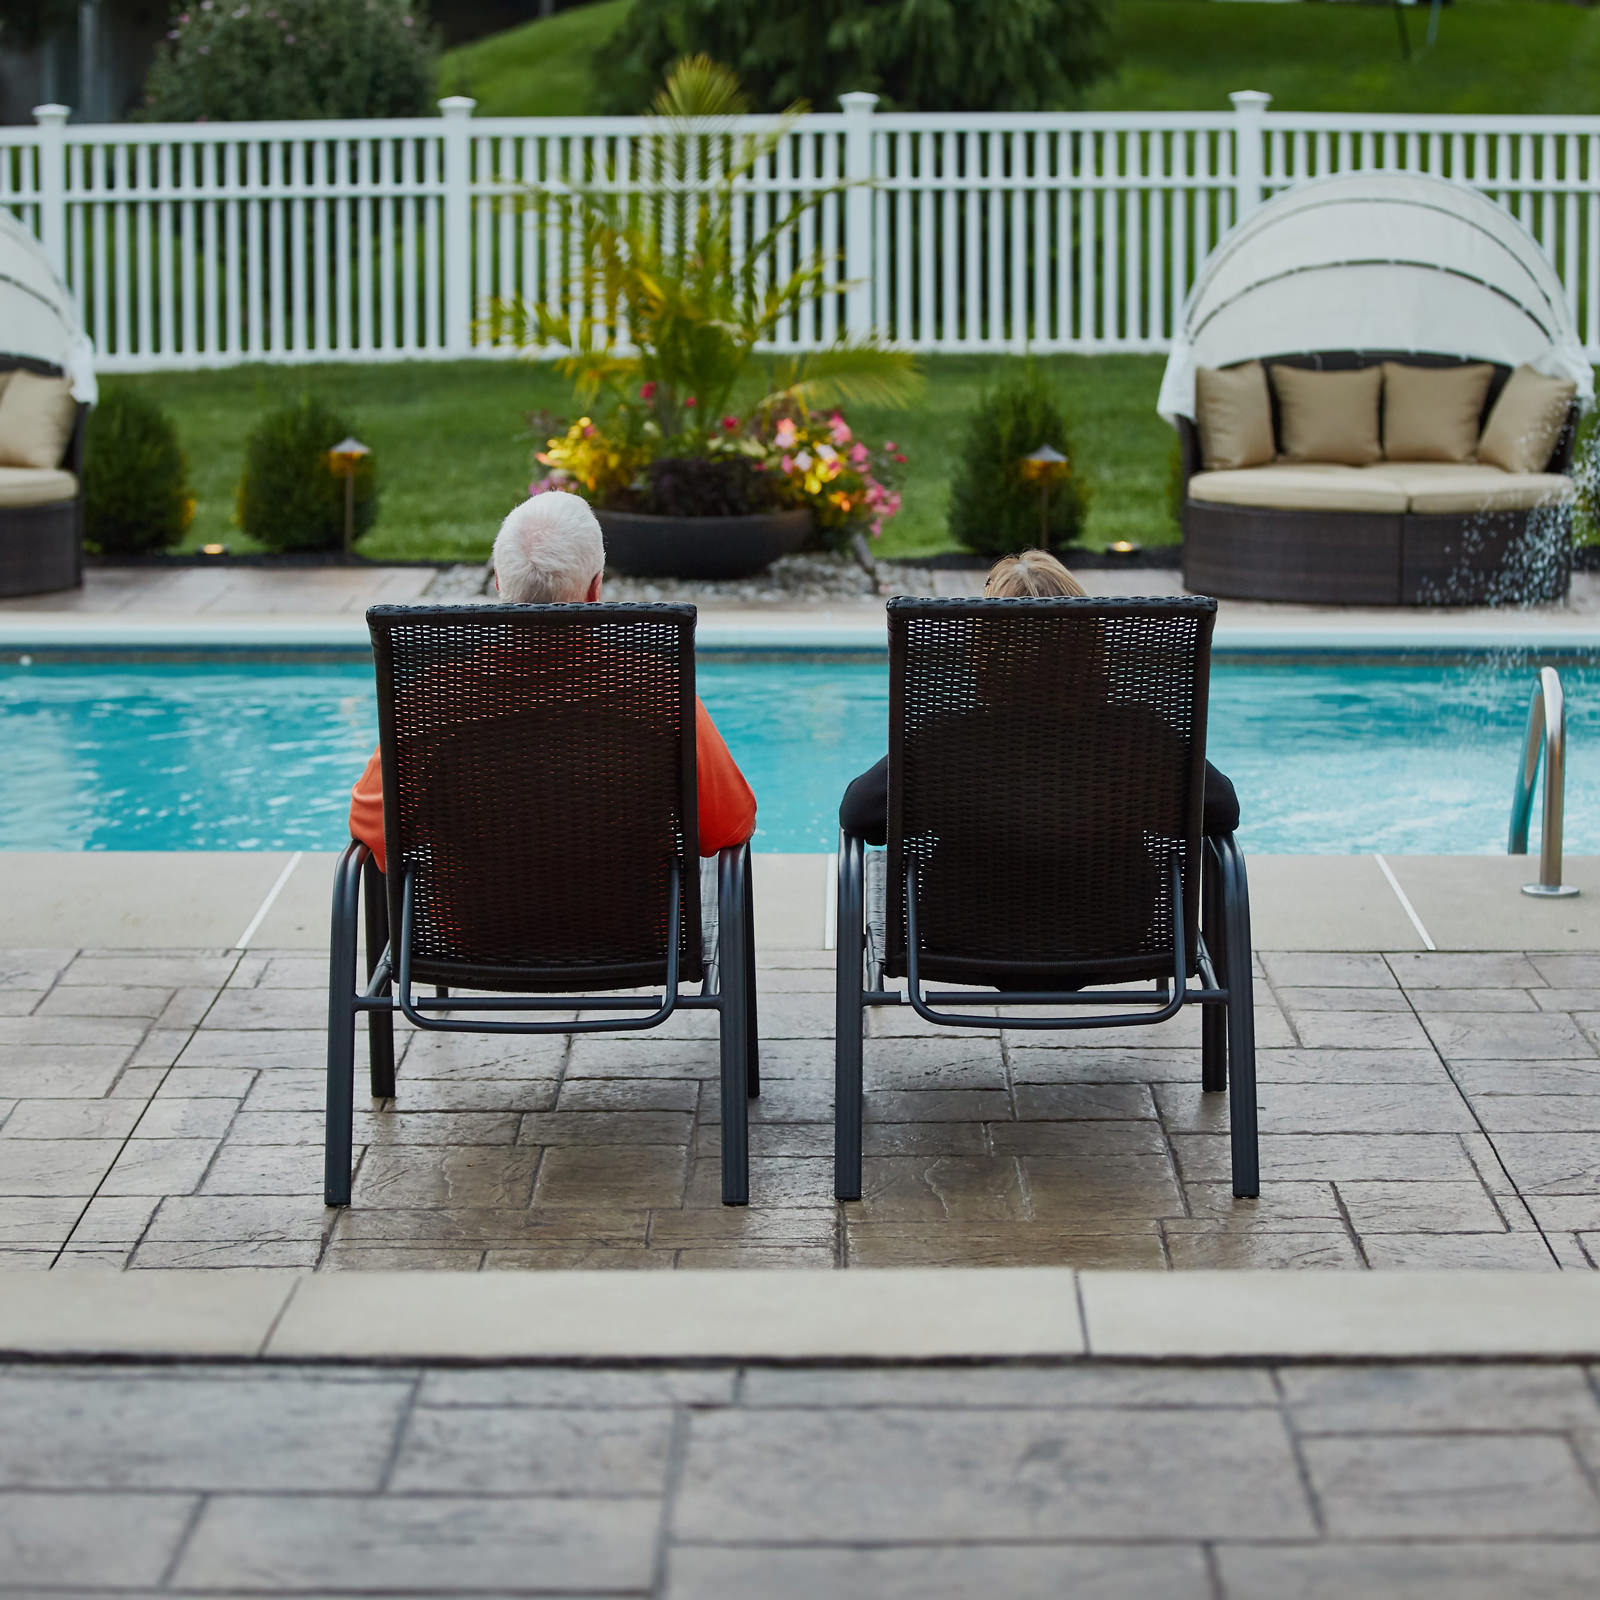 This lovely couple from Bethlehem feel like they are on vacation everyday in their own MasterPLAN created backyard!